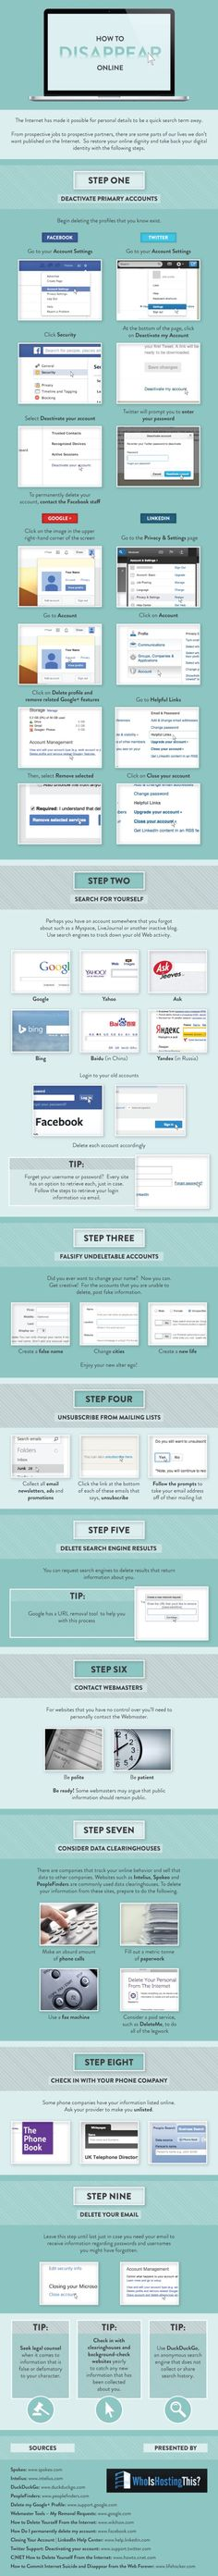 How to disappear online | #infographic #privacy